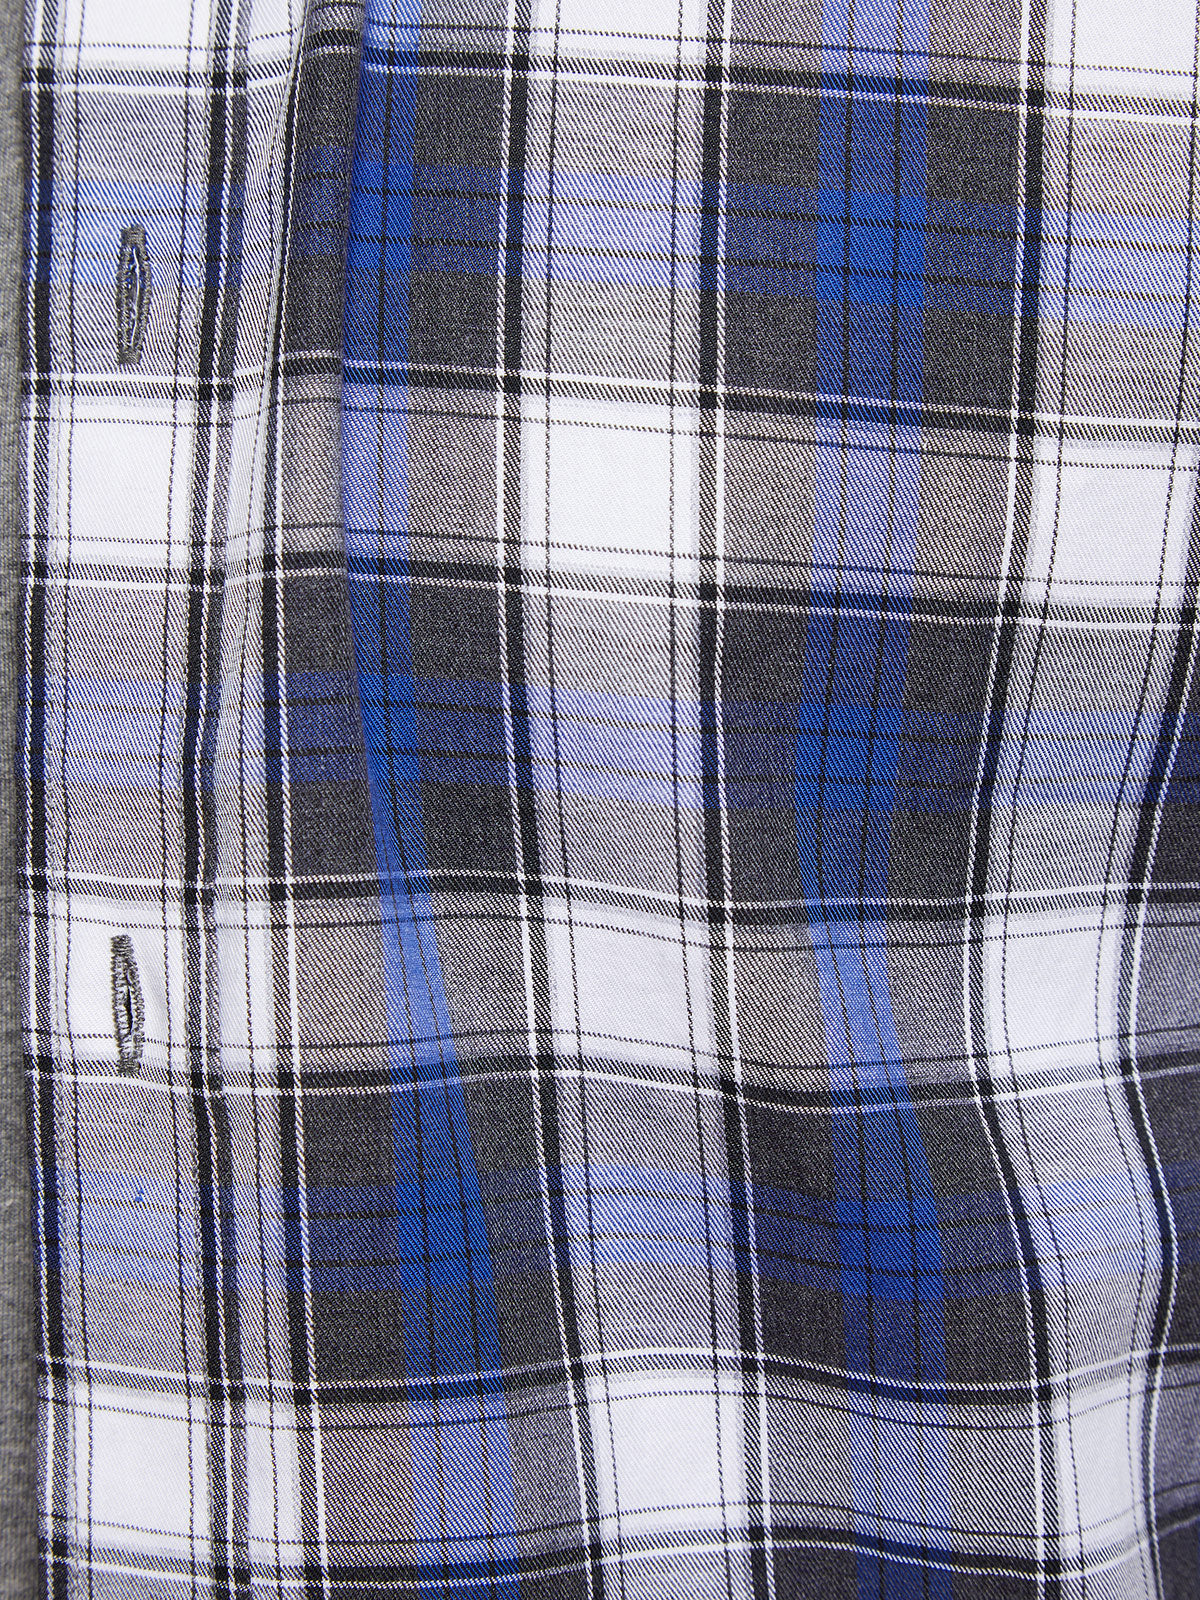 STRATTON CHECKED SHIRT GREY/BLUE